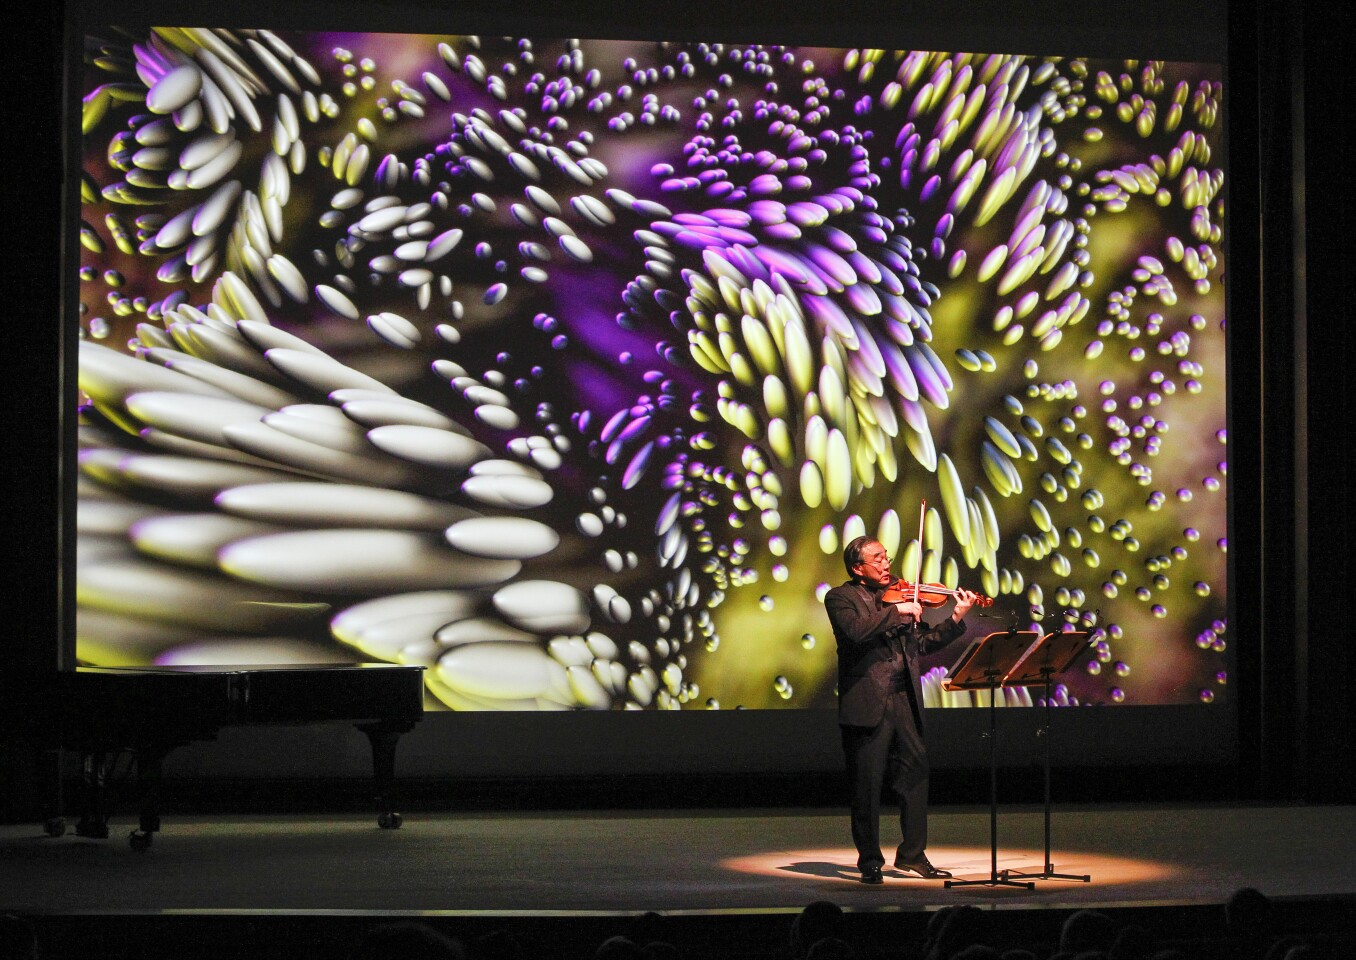 """Violinist Cho-Liang """"Jimmy"""" Lin performs Lalo Schifrin's """"Letters from My Father"""" against a backdrop by creative technologist Osman Koc at the gala opening concert of the La Jolla Music Society's new $82 million Conrad Prebys Performing Arts Center on Friday night in La Jolla, California."""